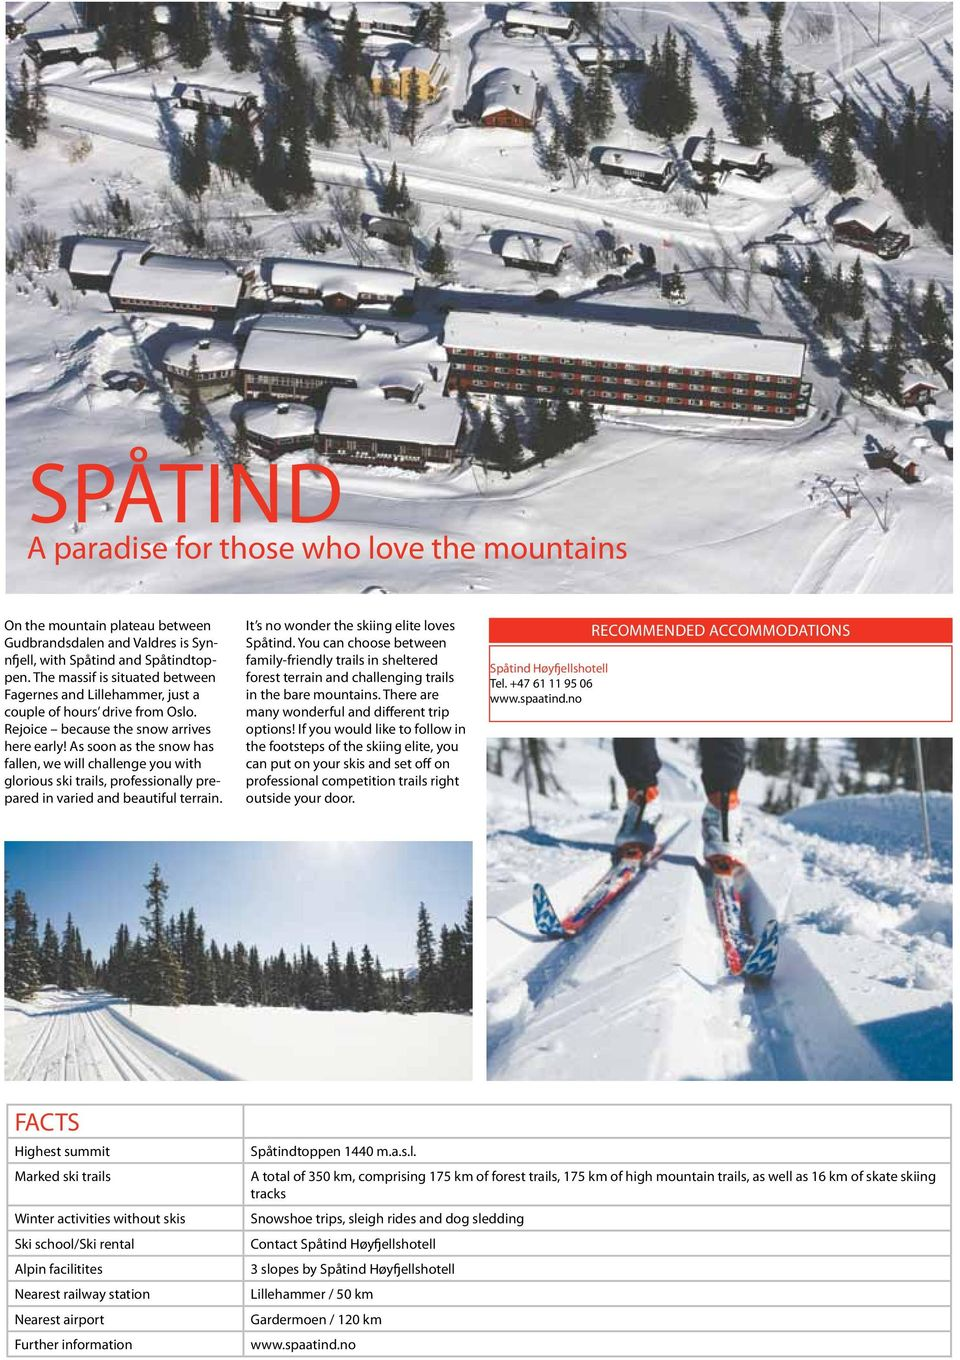 As soon as the snow has fallen, we will challenge you with glorious ski trails, professionally prepared in varied and beautiful terrain. It s no wonder the skiing elite loves Spåtind.